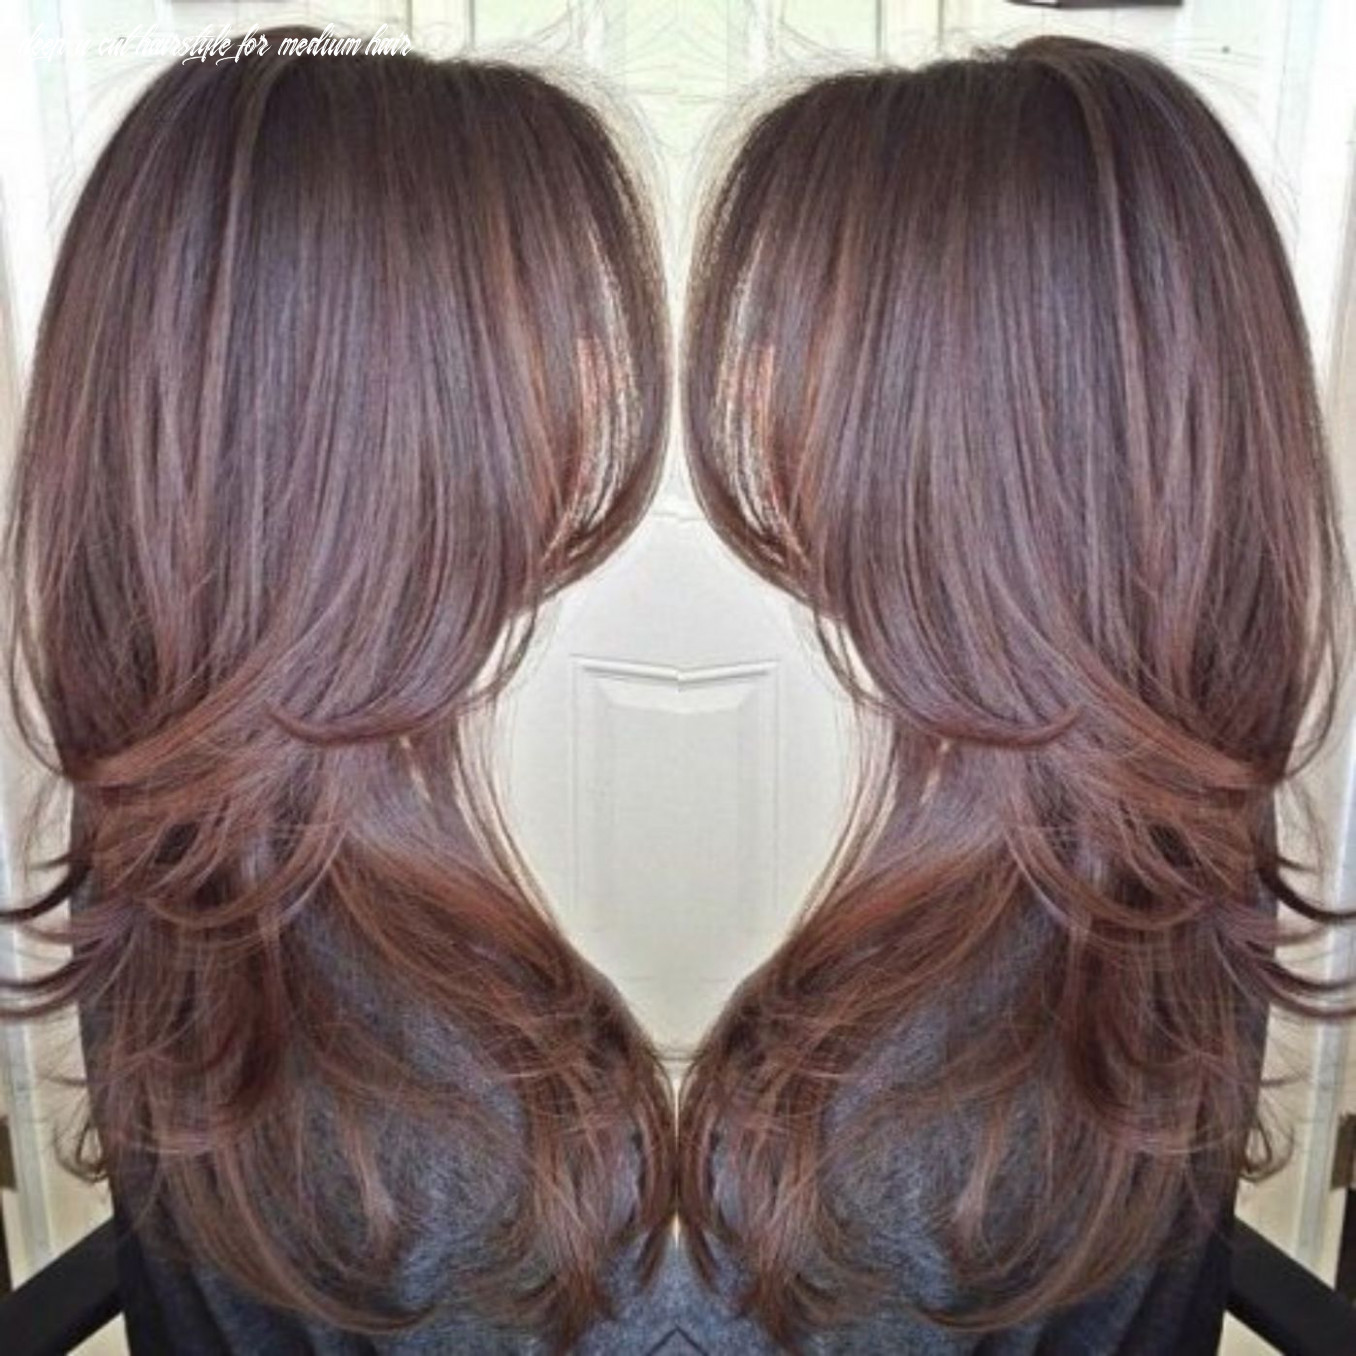 10 picture perfect hairstyles for long thin hair | messy short